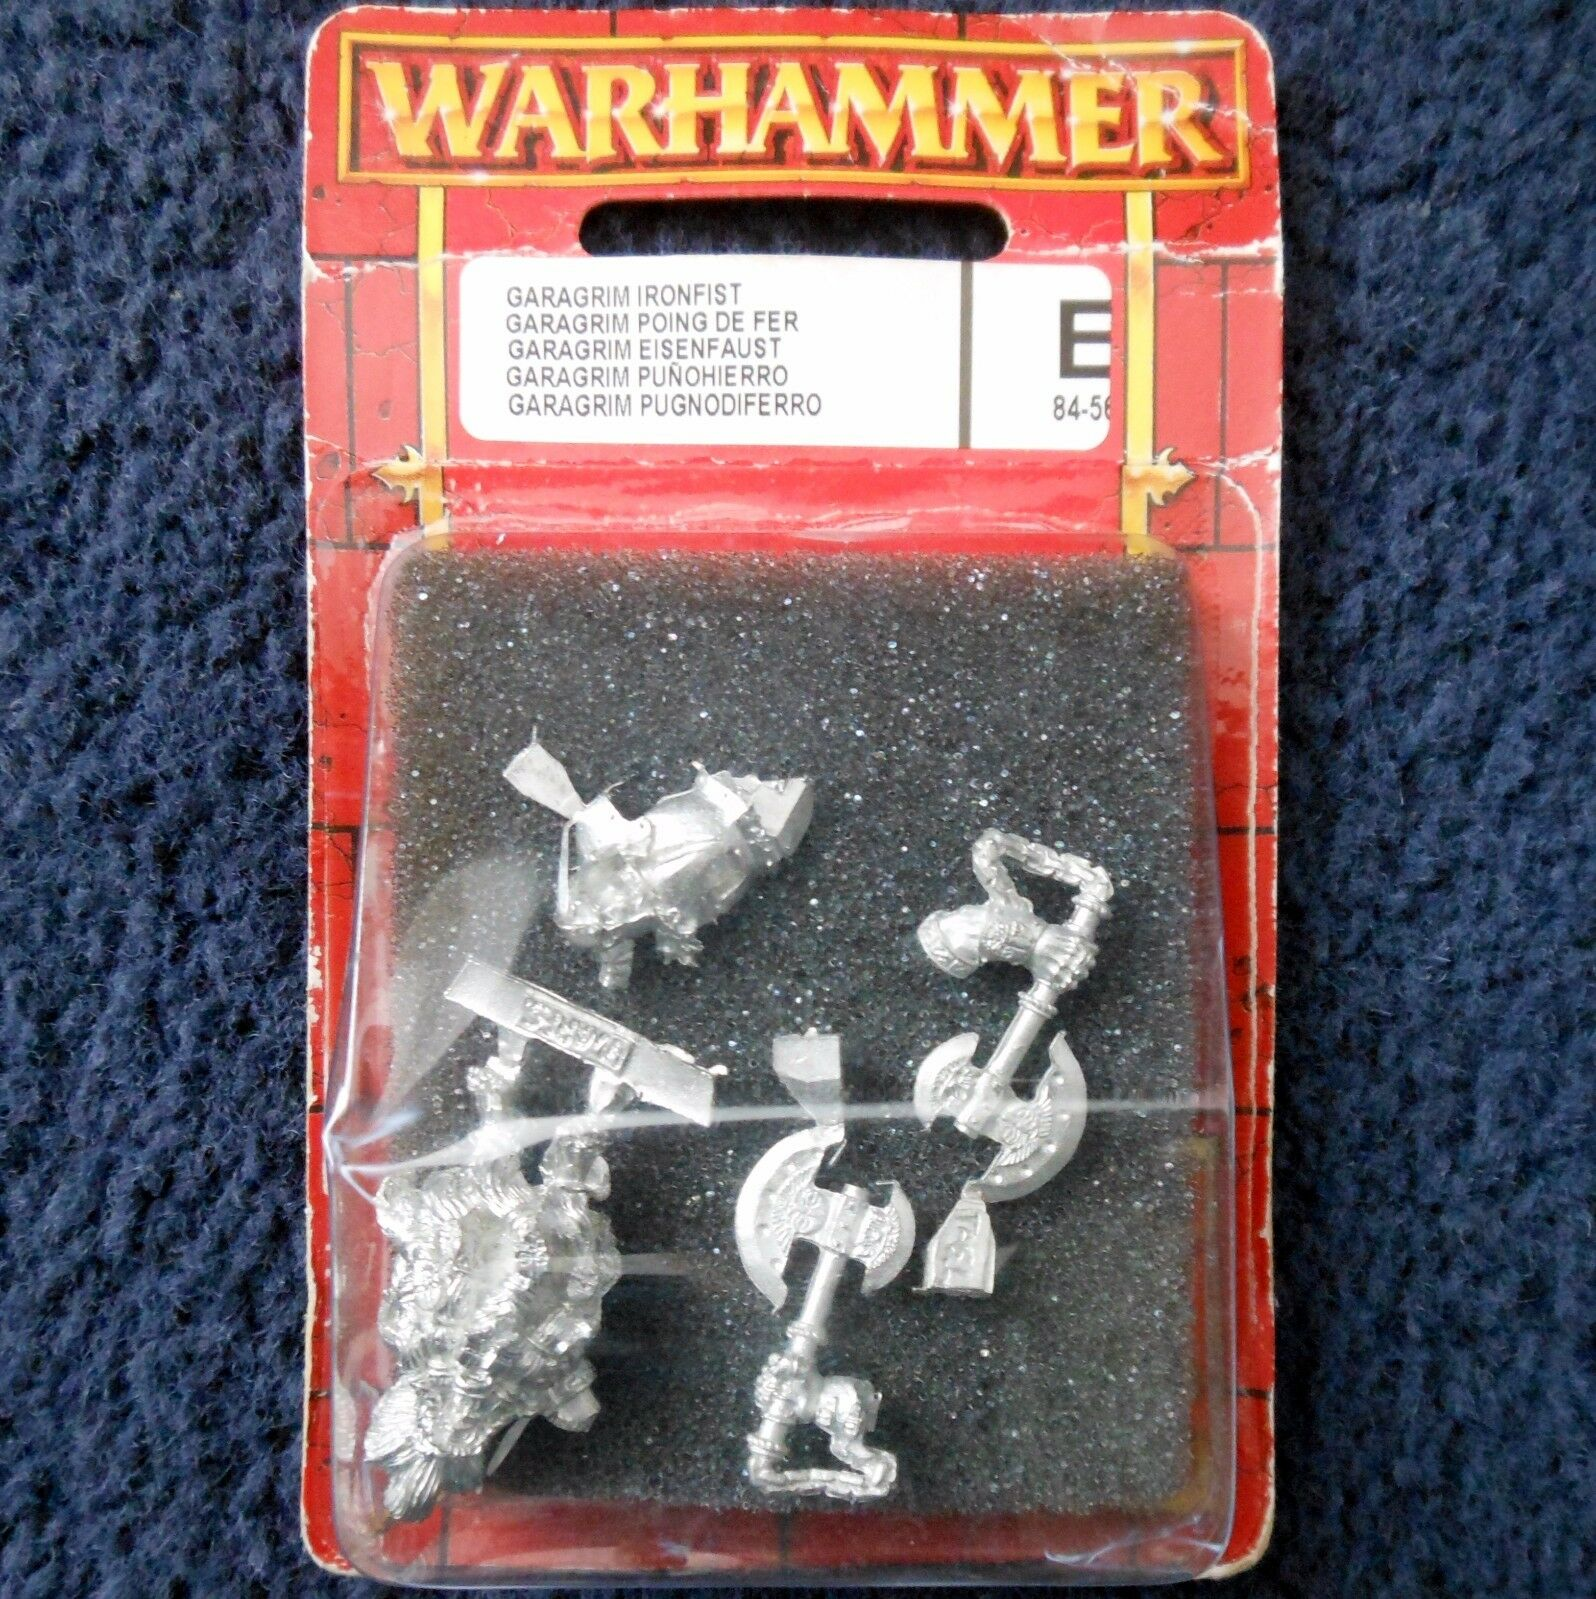 2003 Dwarf Garagrim Ironfist Slayer Prince Games Workshop Warhammer Army D&D MIB